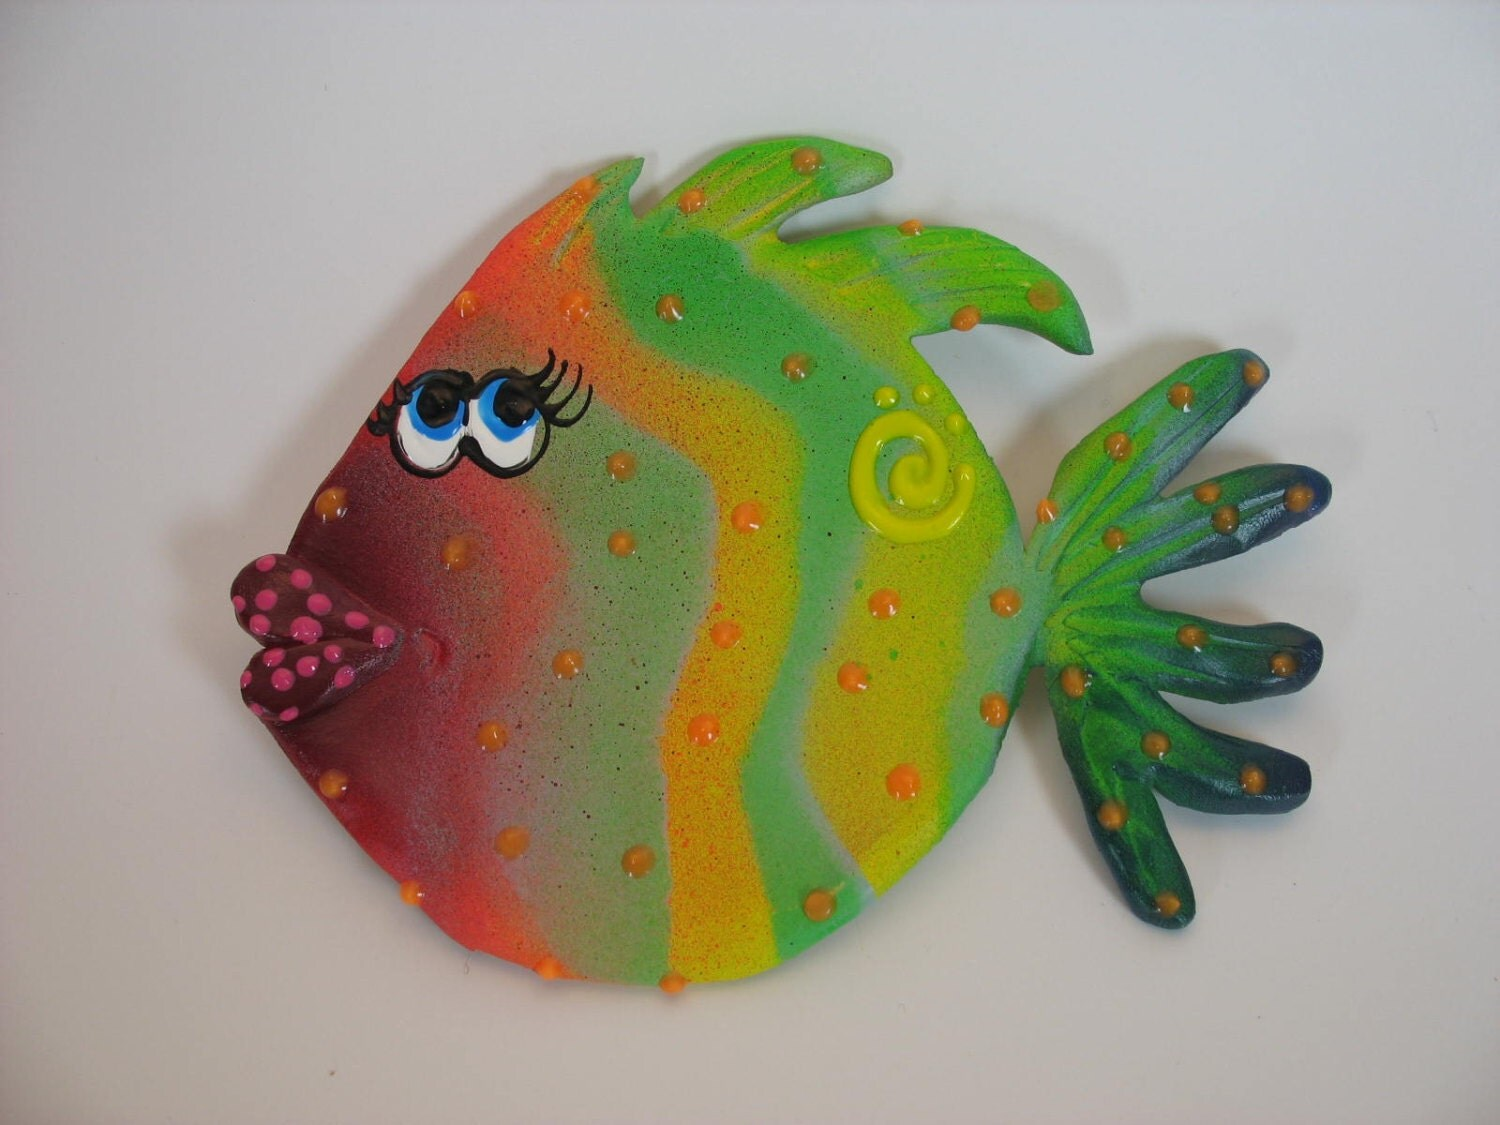 Whimsical wall hanging blowfish underwater fish room decor for Whimsical decor